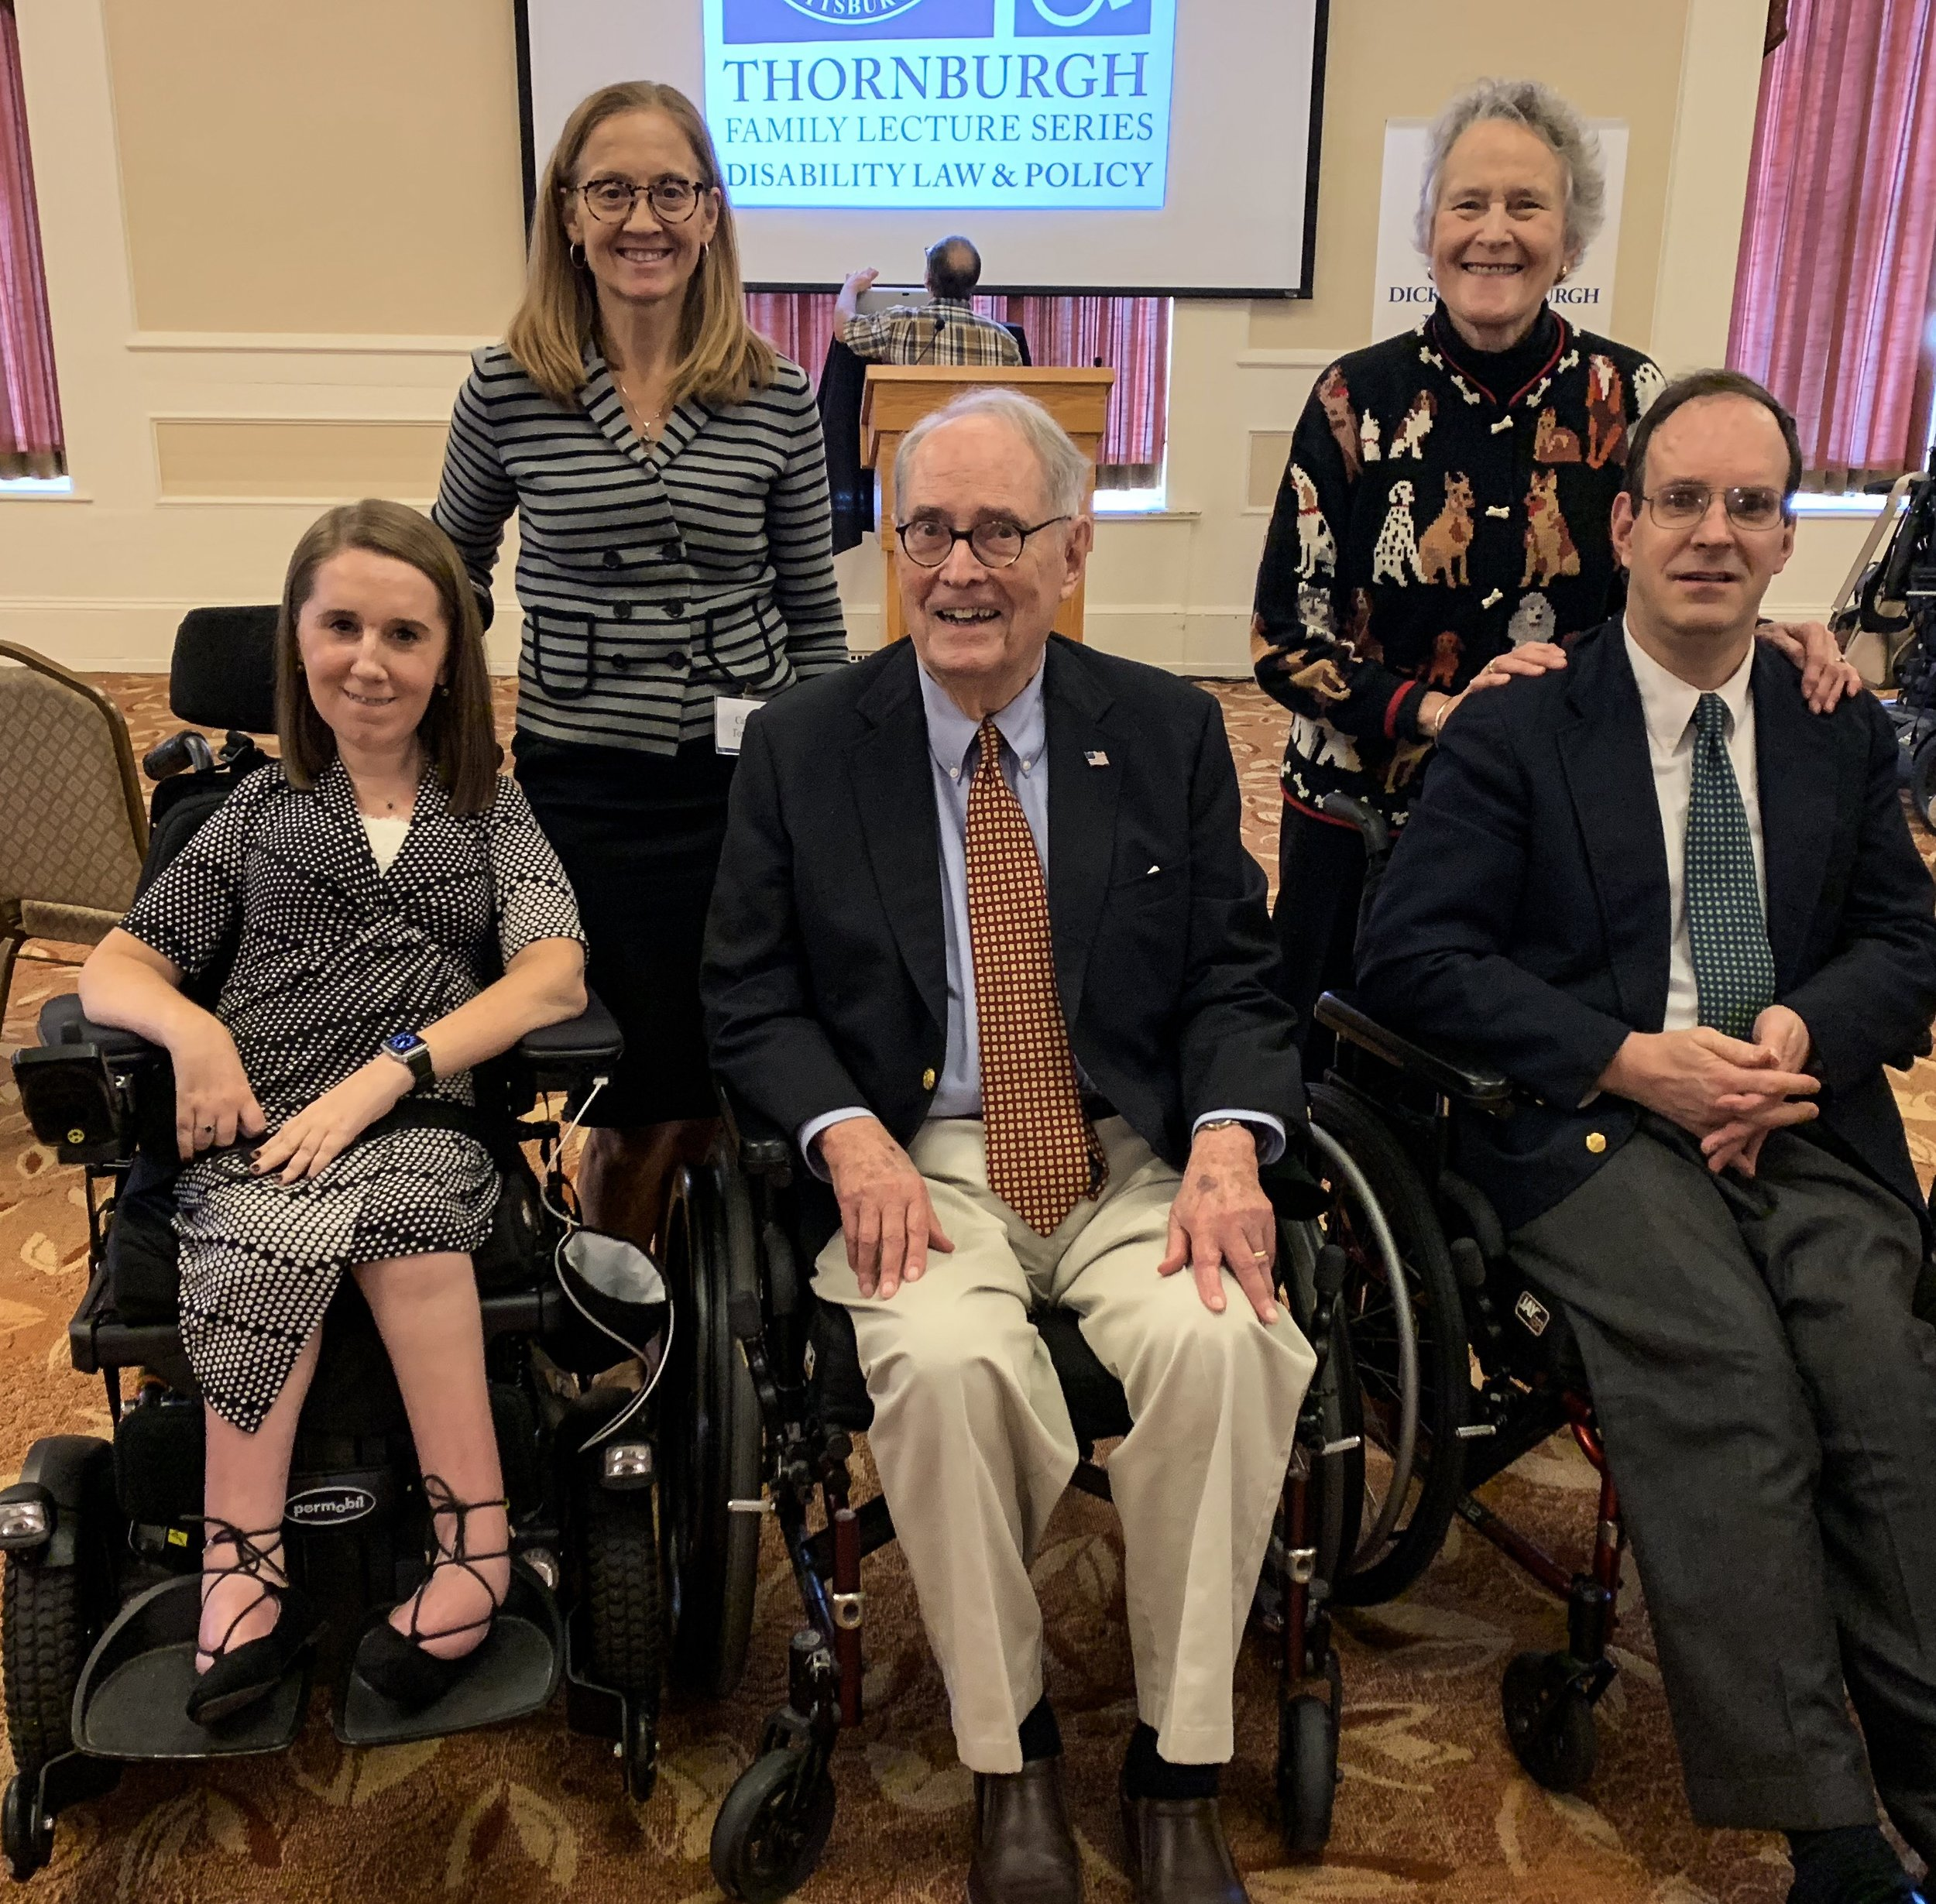 Image of Heather, former Governor of Pennsylvania Dick Thornburgh, and his son. All three people people in the photo use wheelchairs.